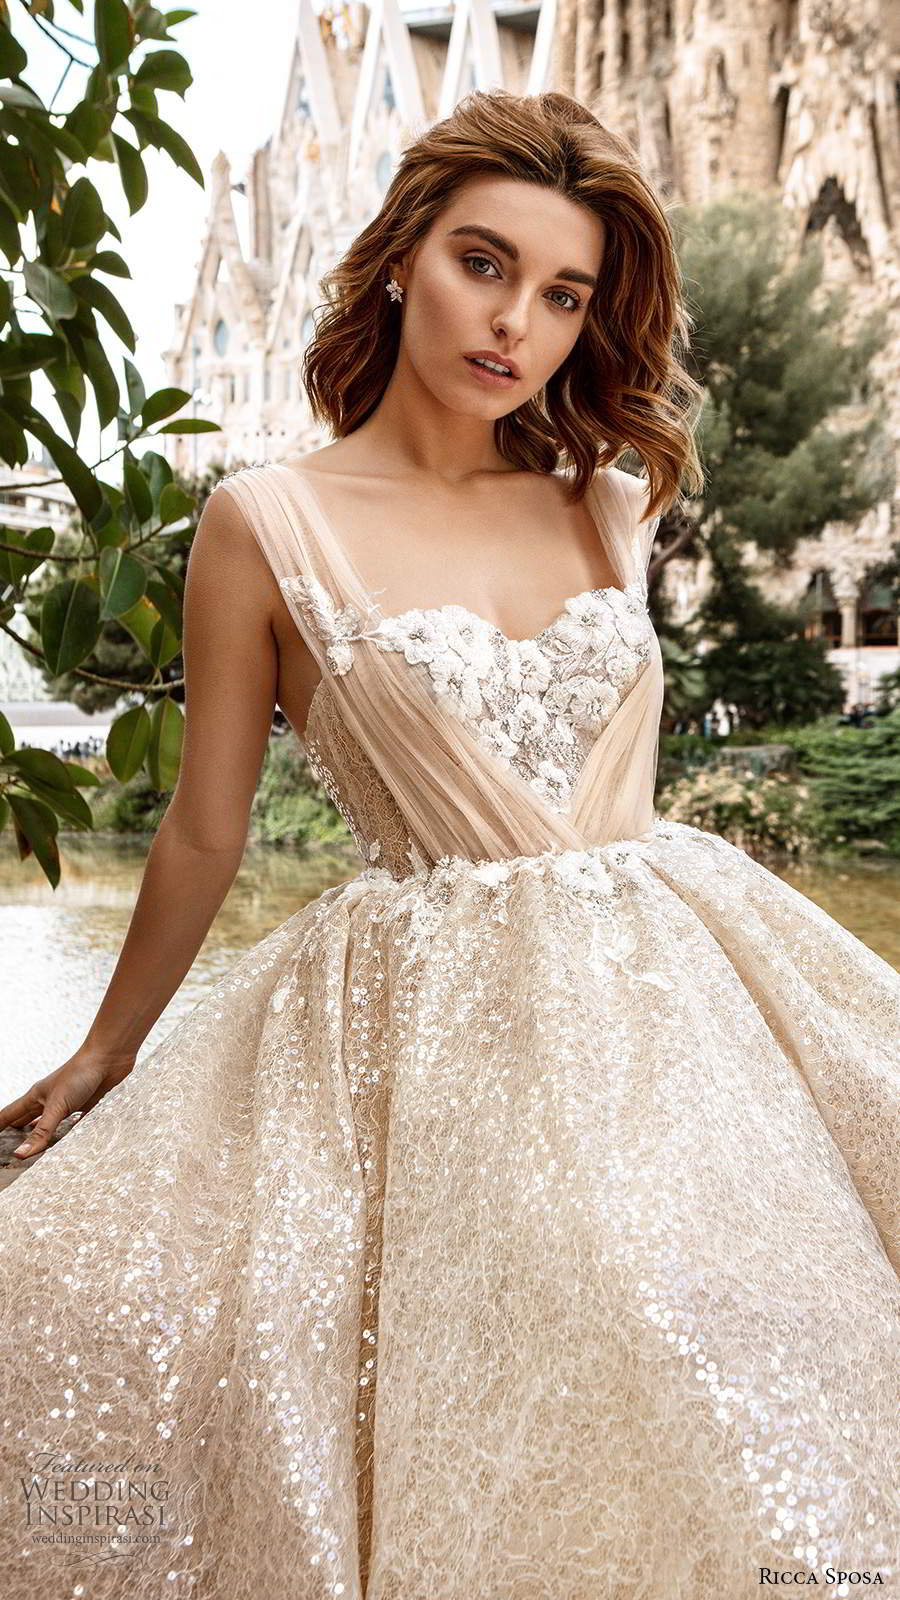 ricca sposa 2020 barcelona bridal off shoulder sweetheart neckline ruched bodice fully embellished romantic glitzy a line ball gown wedding dress v back cathedral train (1) zv